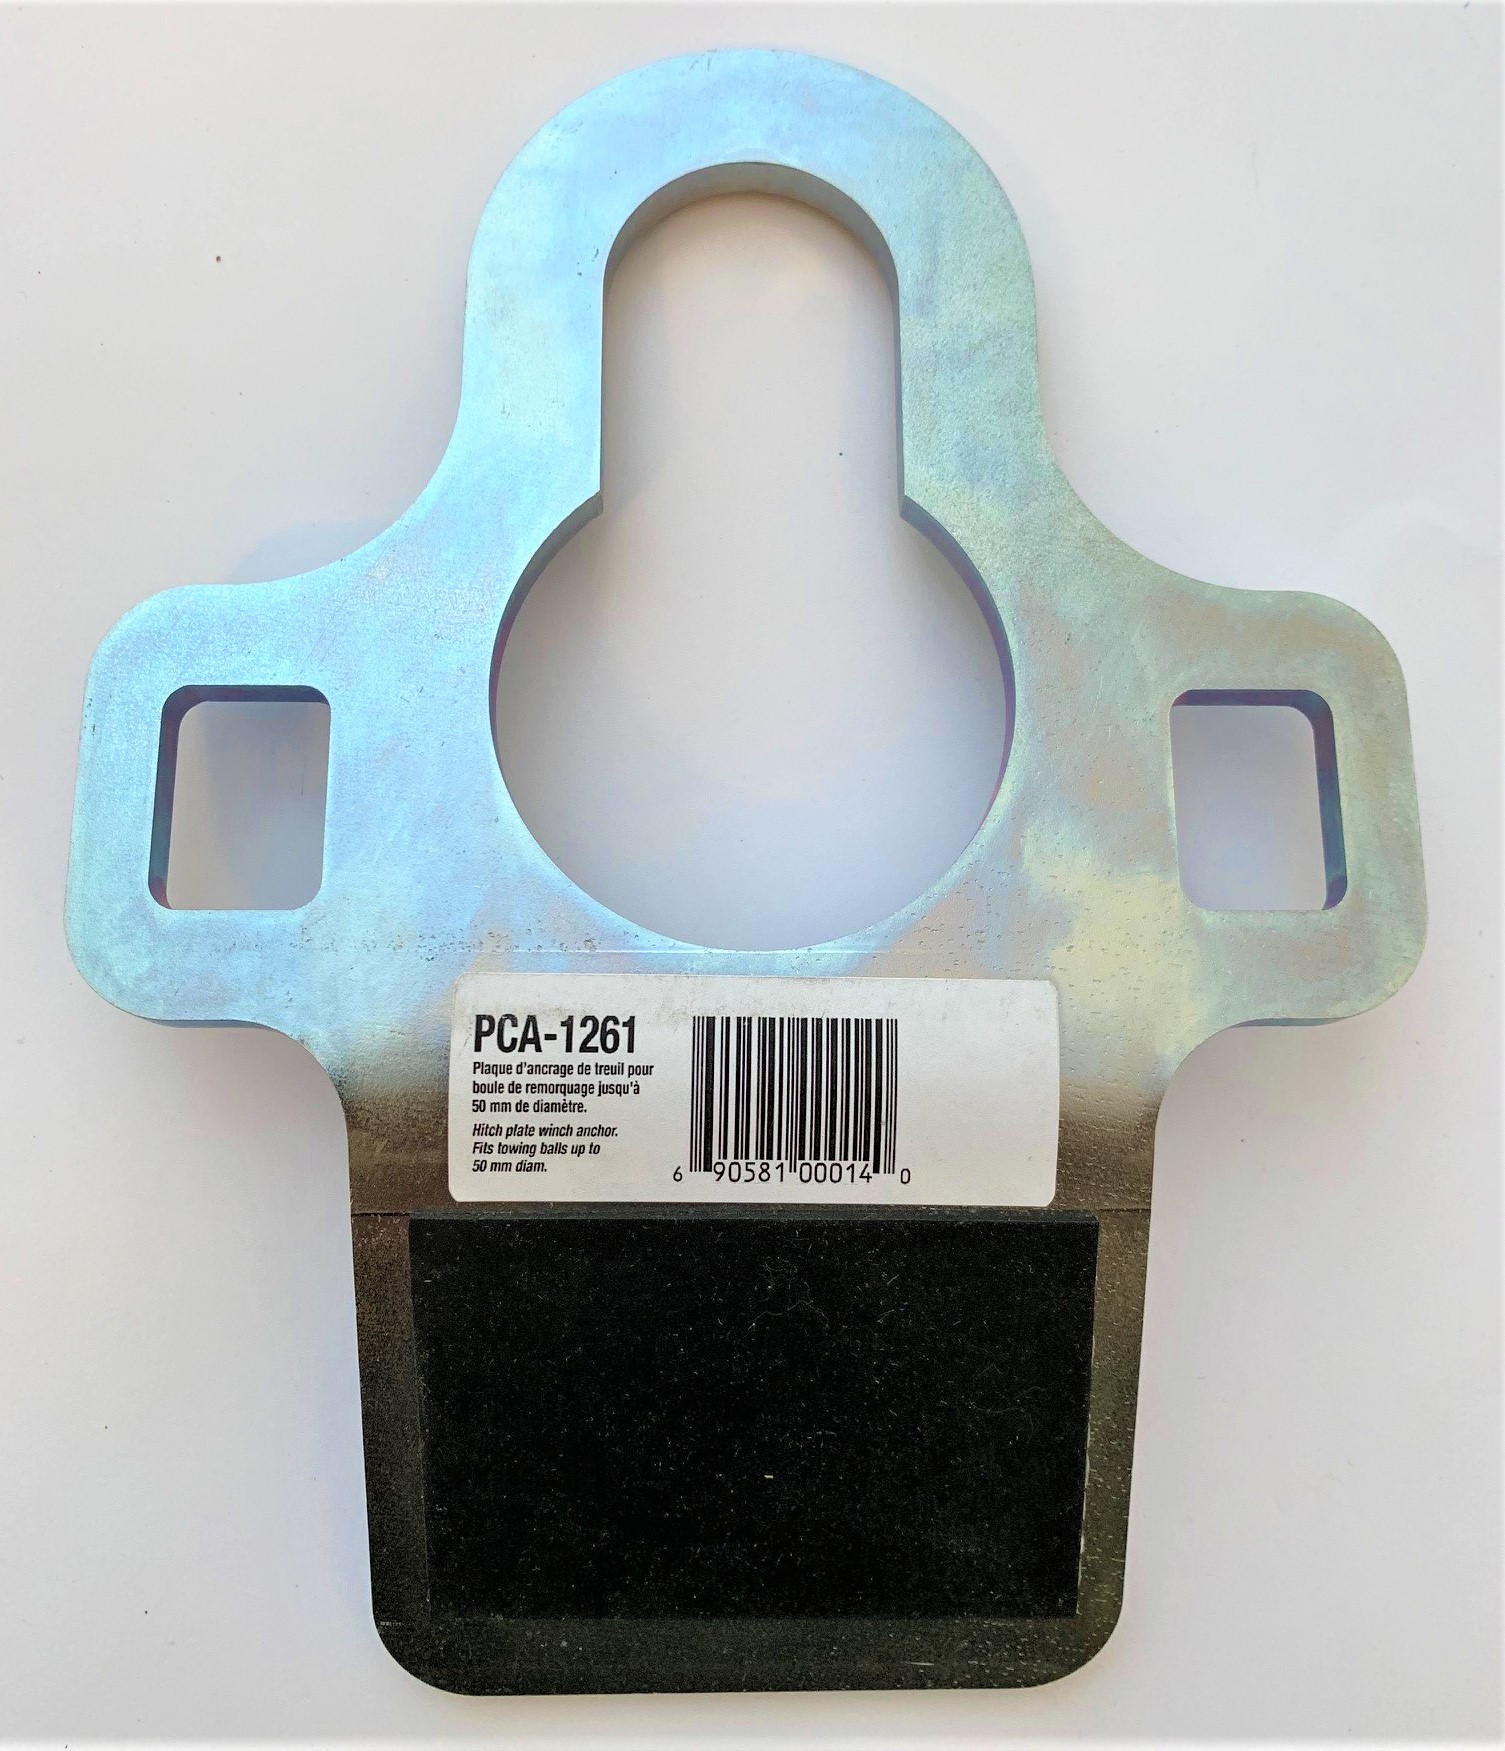 PCA-1261 HOLDING PLATE FOR PCW3000 PORTABLE GAS WINCH